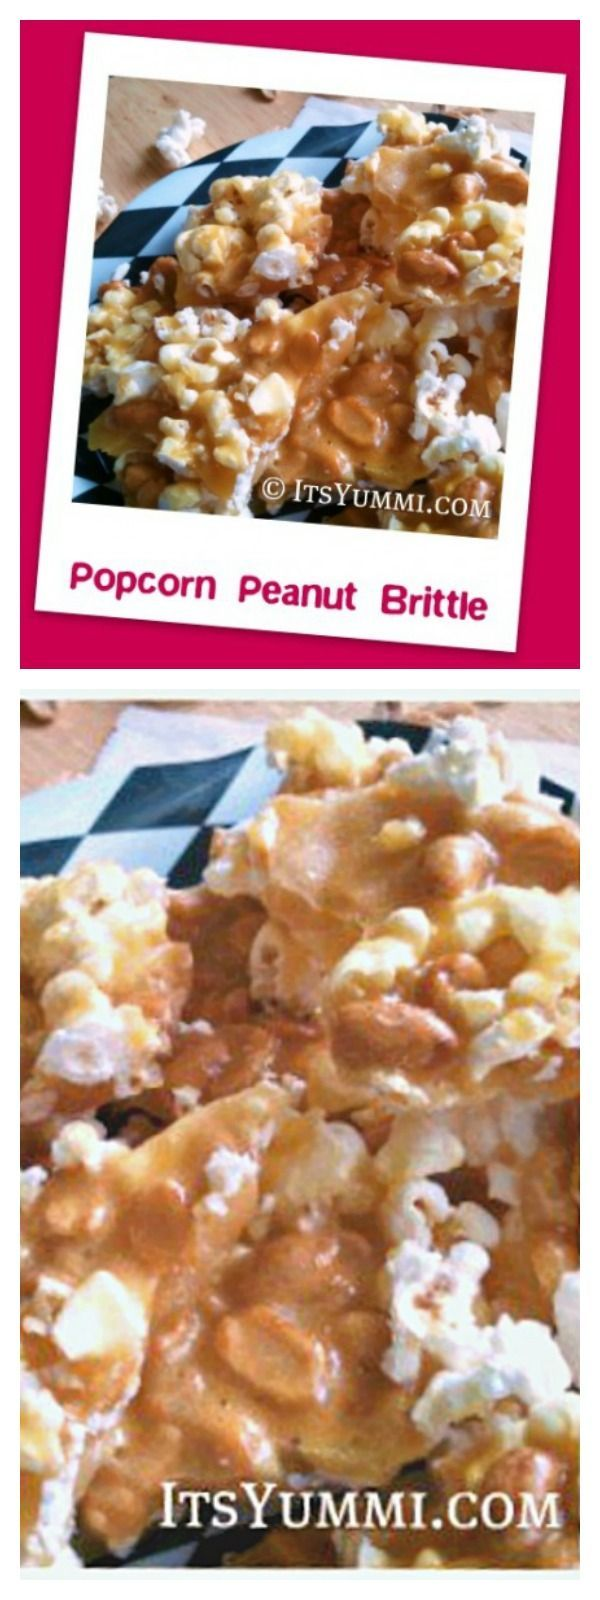 Popcorn peanut brittle is a salty-sweet snack, perfect for game day munchies, holiday food gifts, or for no special occasion at all! via @itsyummi